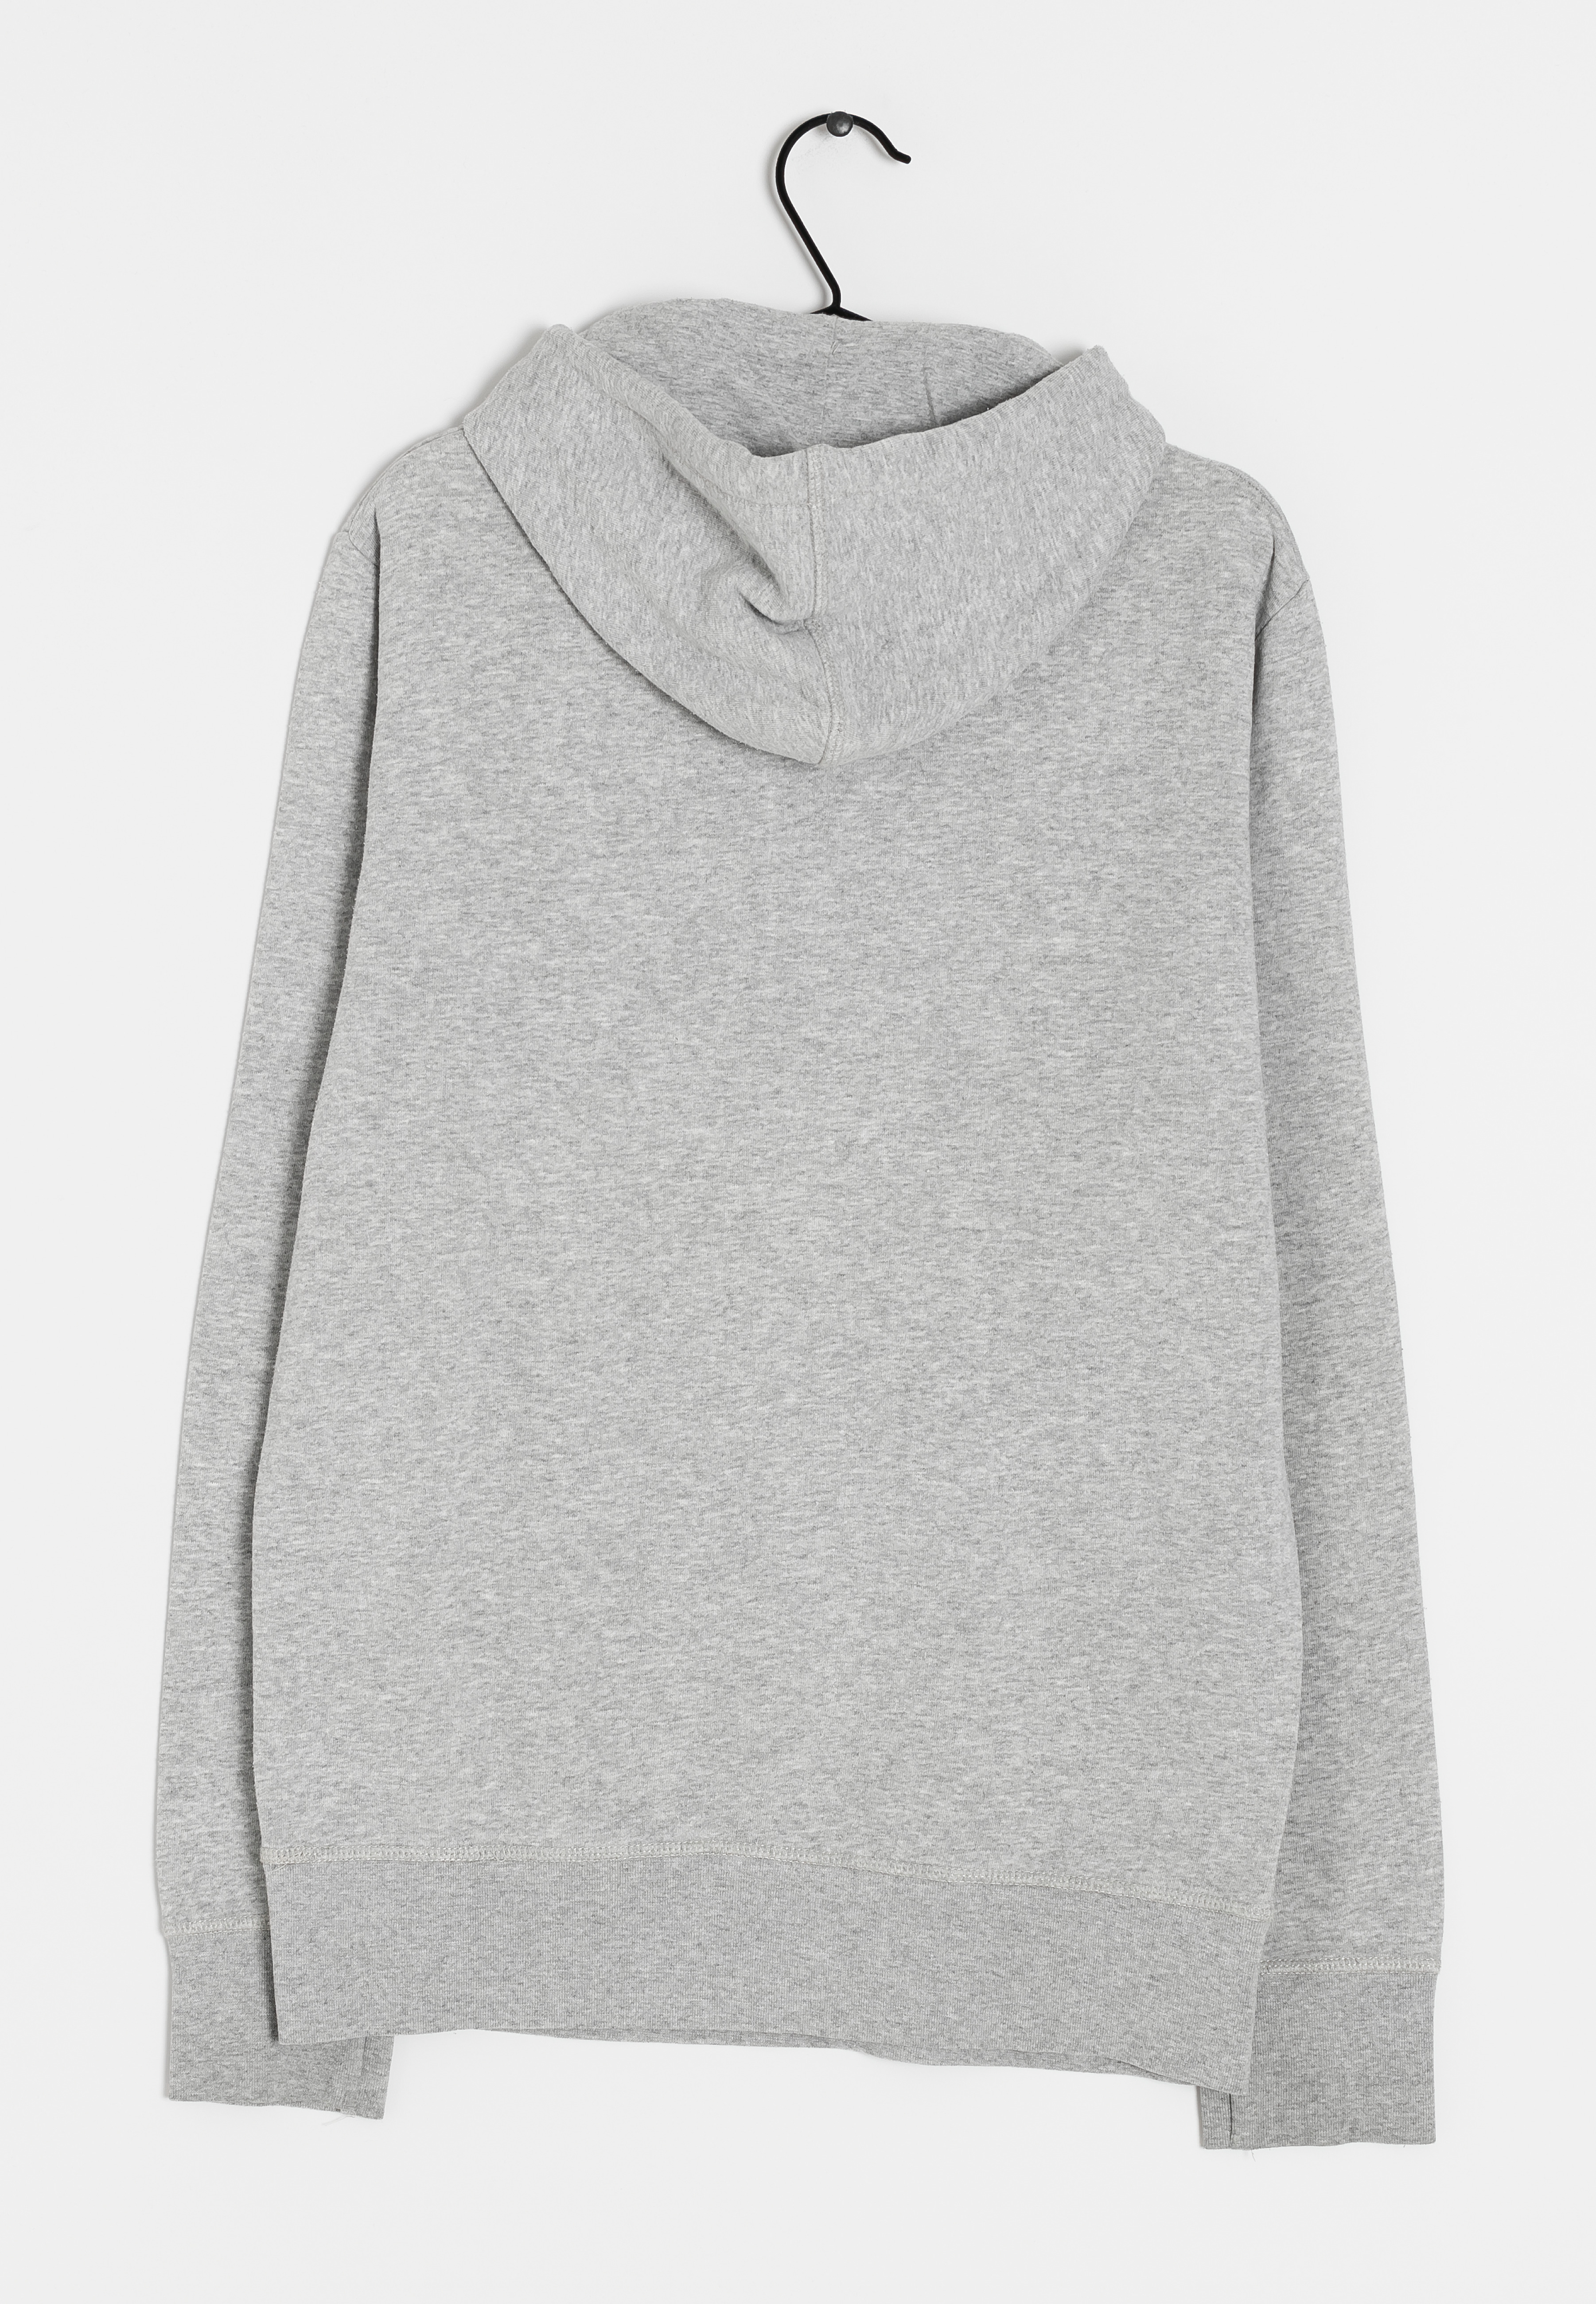 Jack & Jones Sweatshirt / Fleecejacke Grau Gr.L